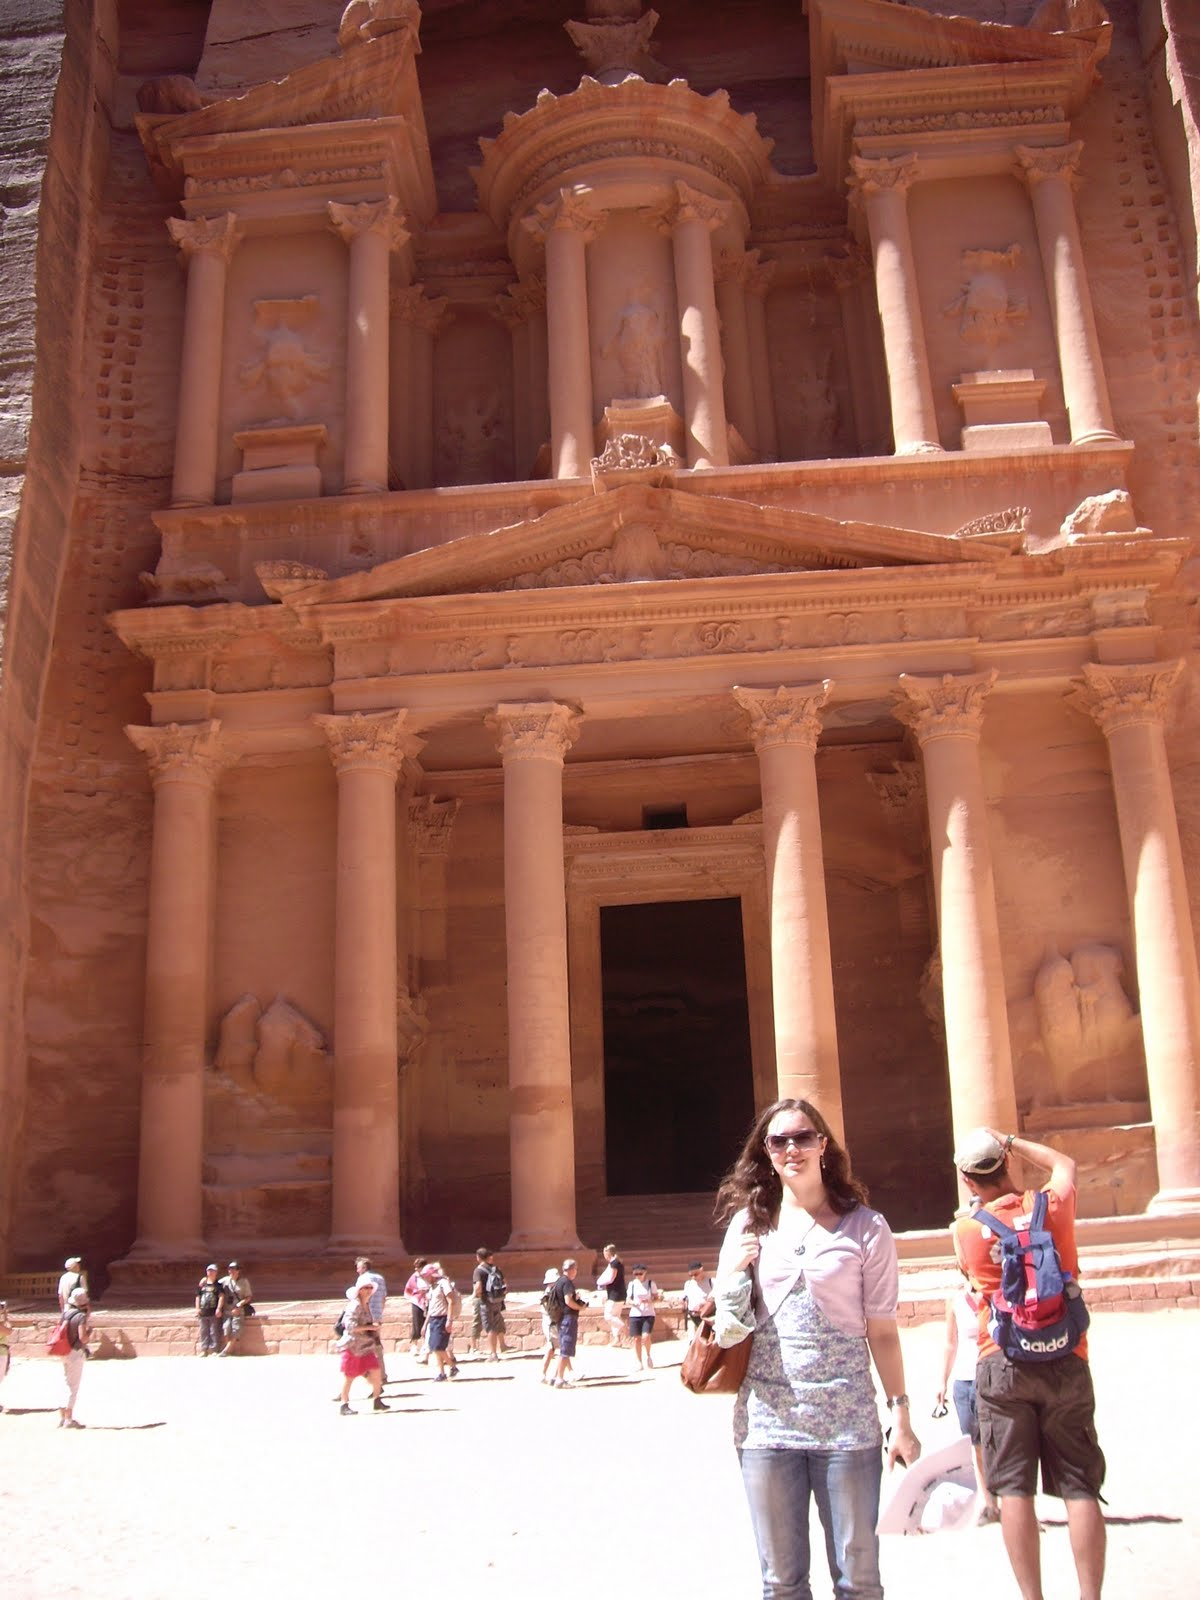 Sightseeing in Jordan: Petra & the Desert of Wadi Rum